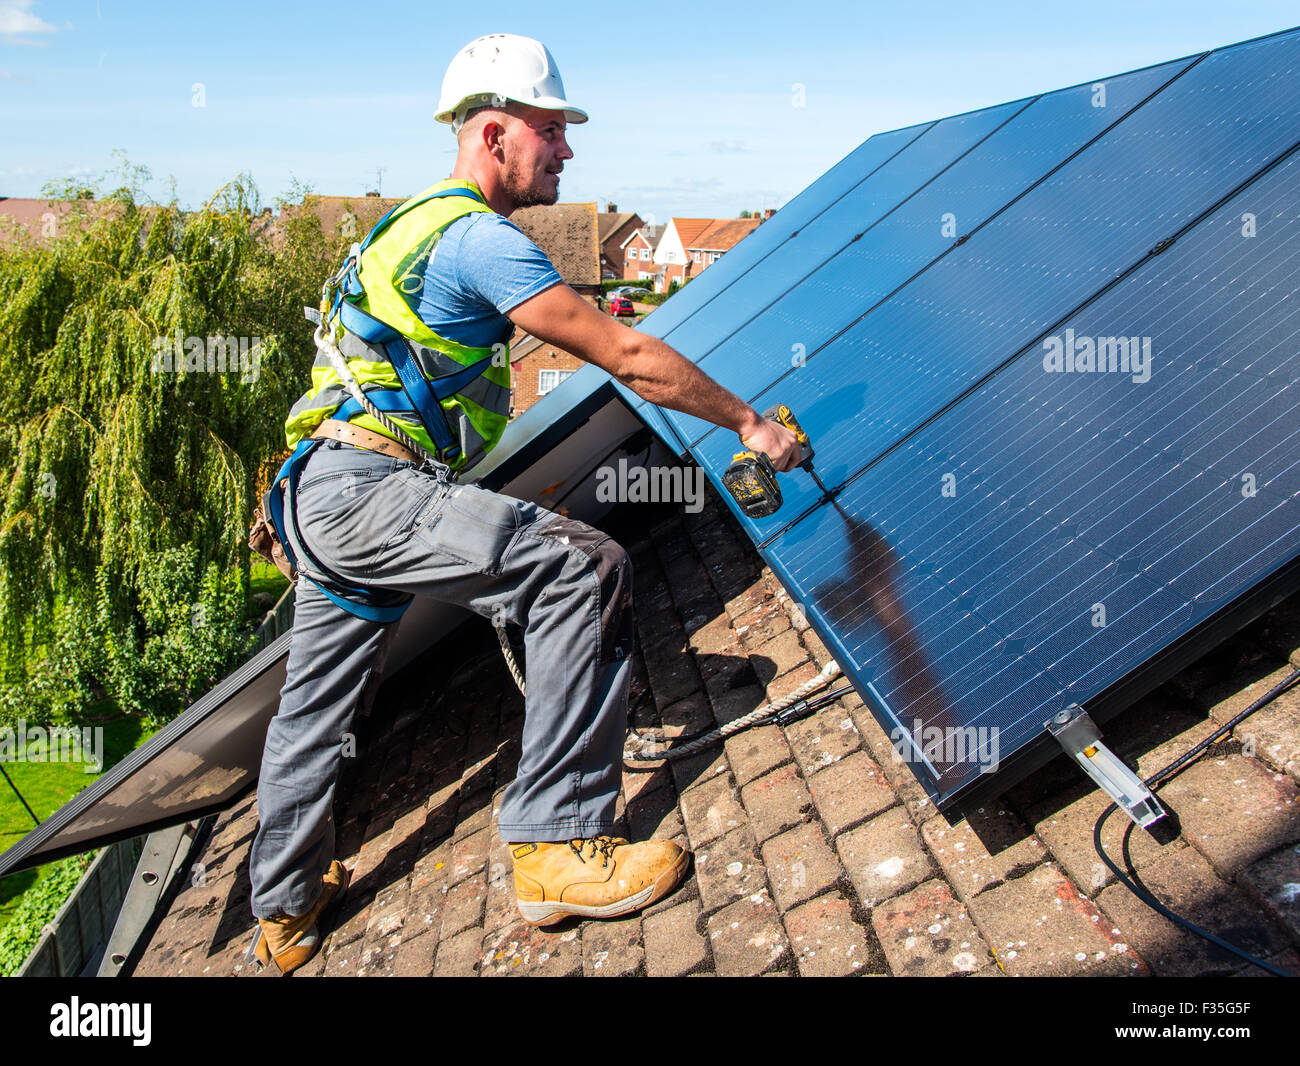 Roofer fitting a domestic solar panel system - Stock Image